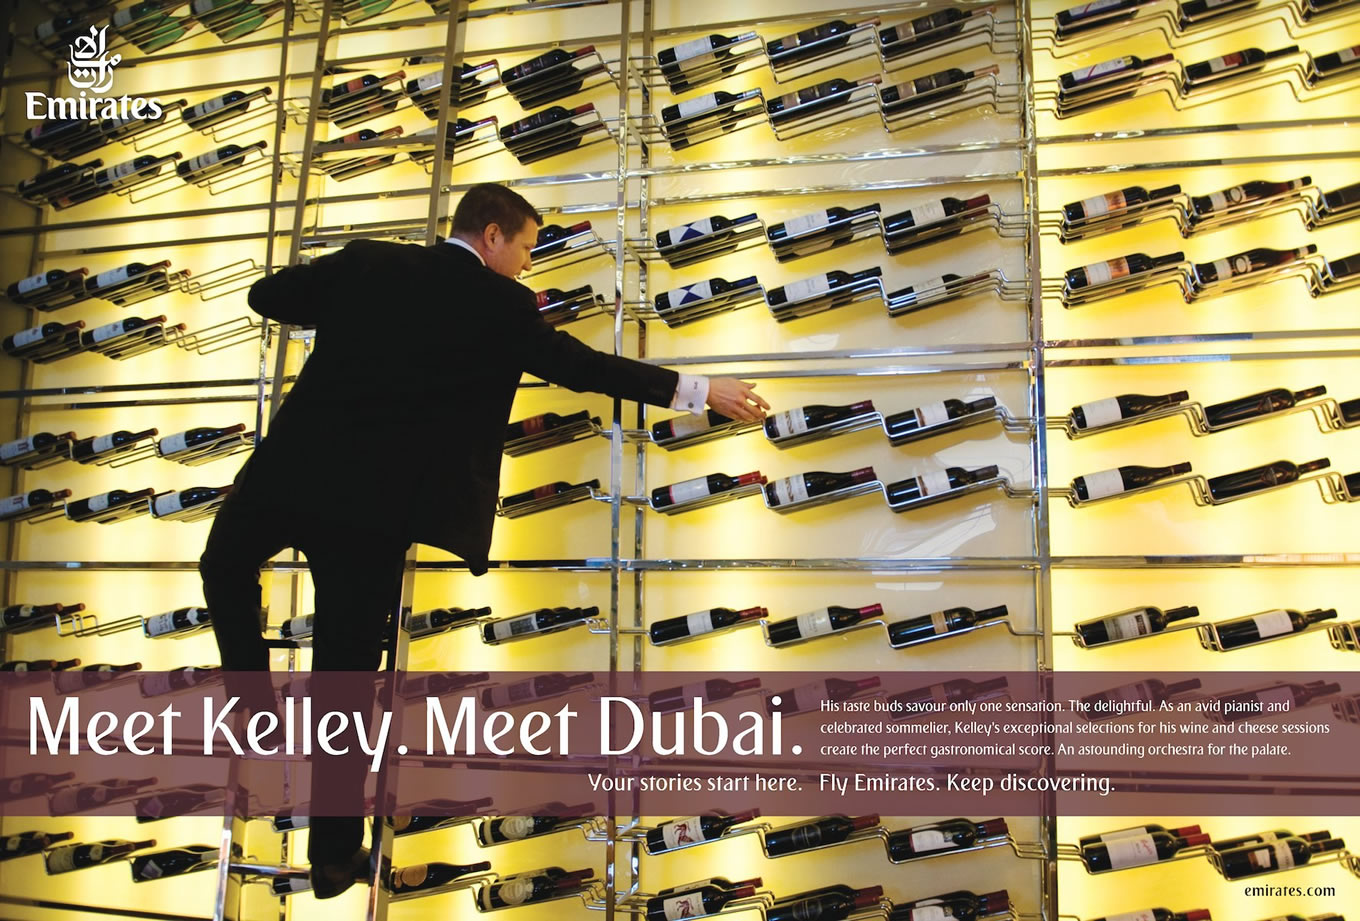 Meet Kelley, Meet Dubai Advertising Campaign by Emirates